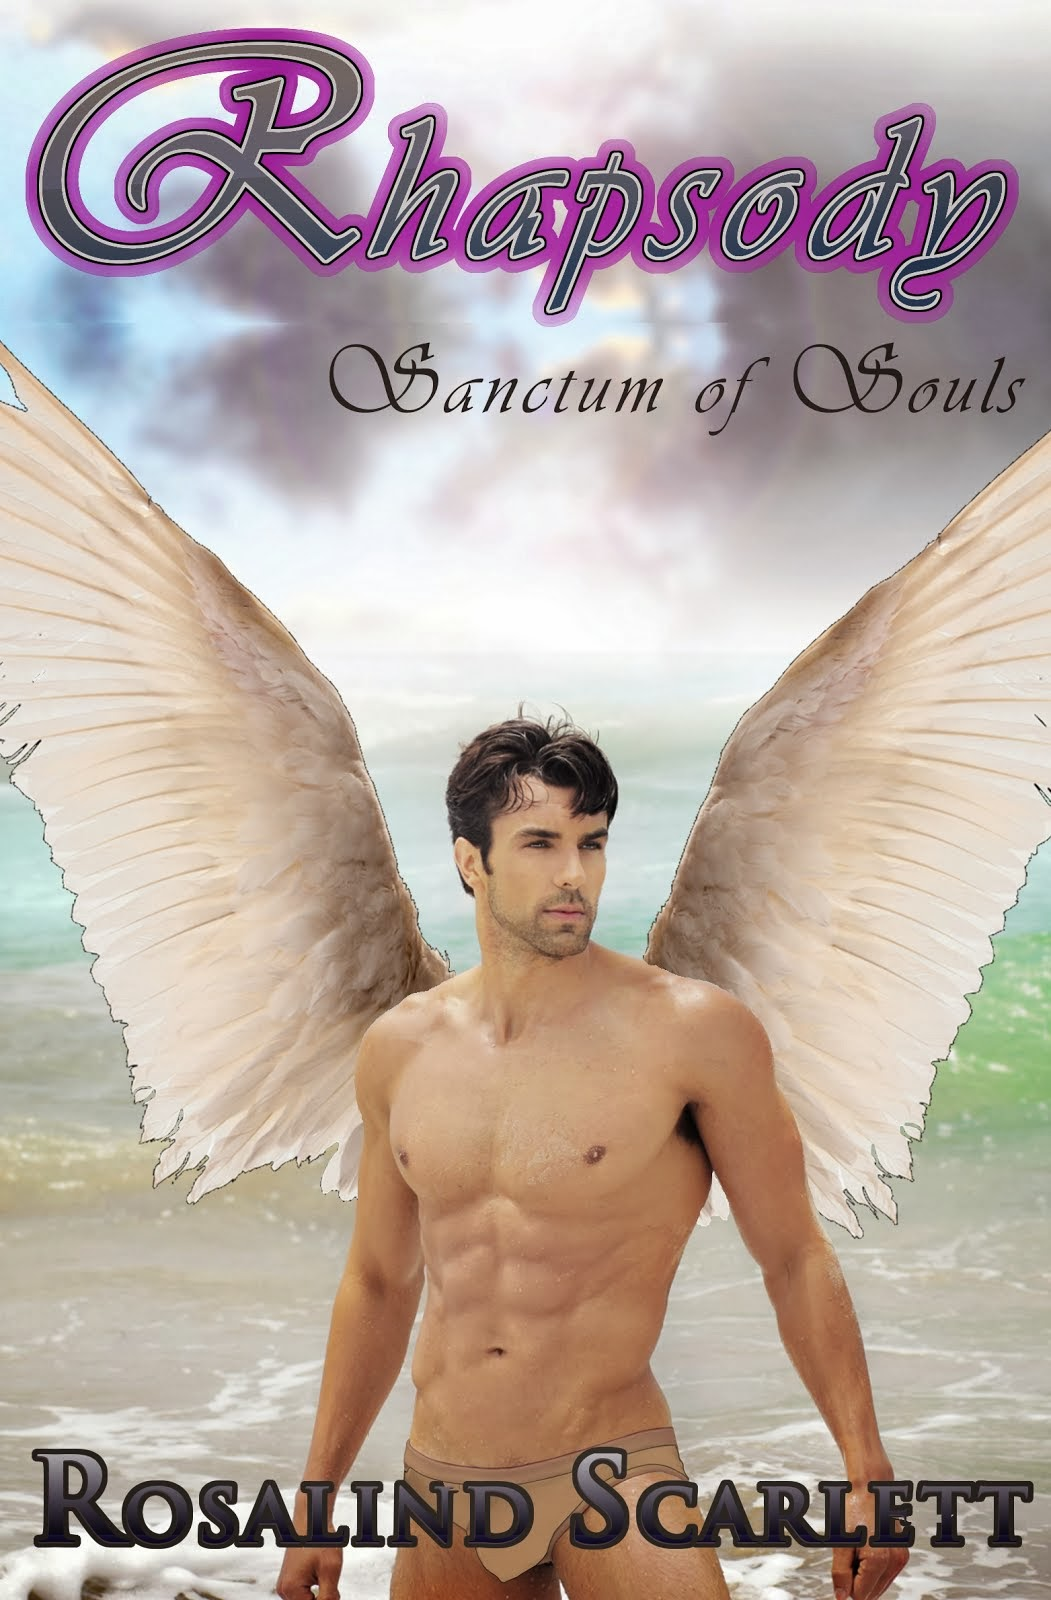 NEW ANGEL PARANORMAL ROMANCE SERIES!